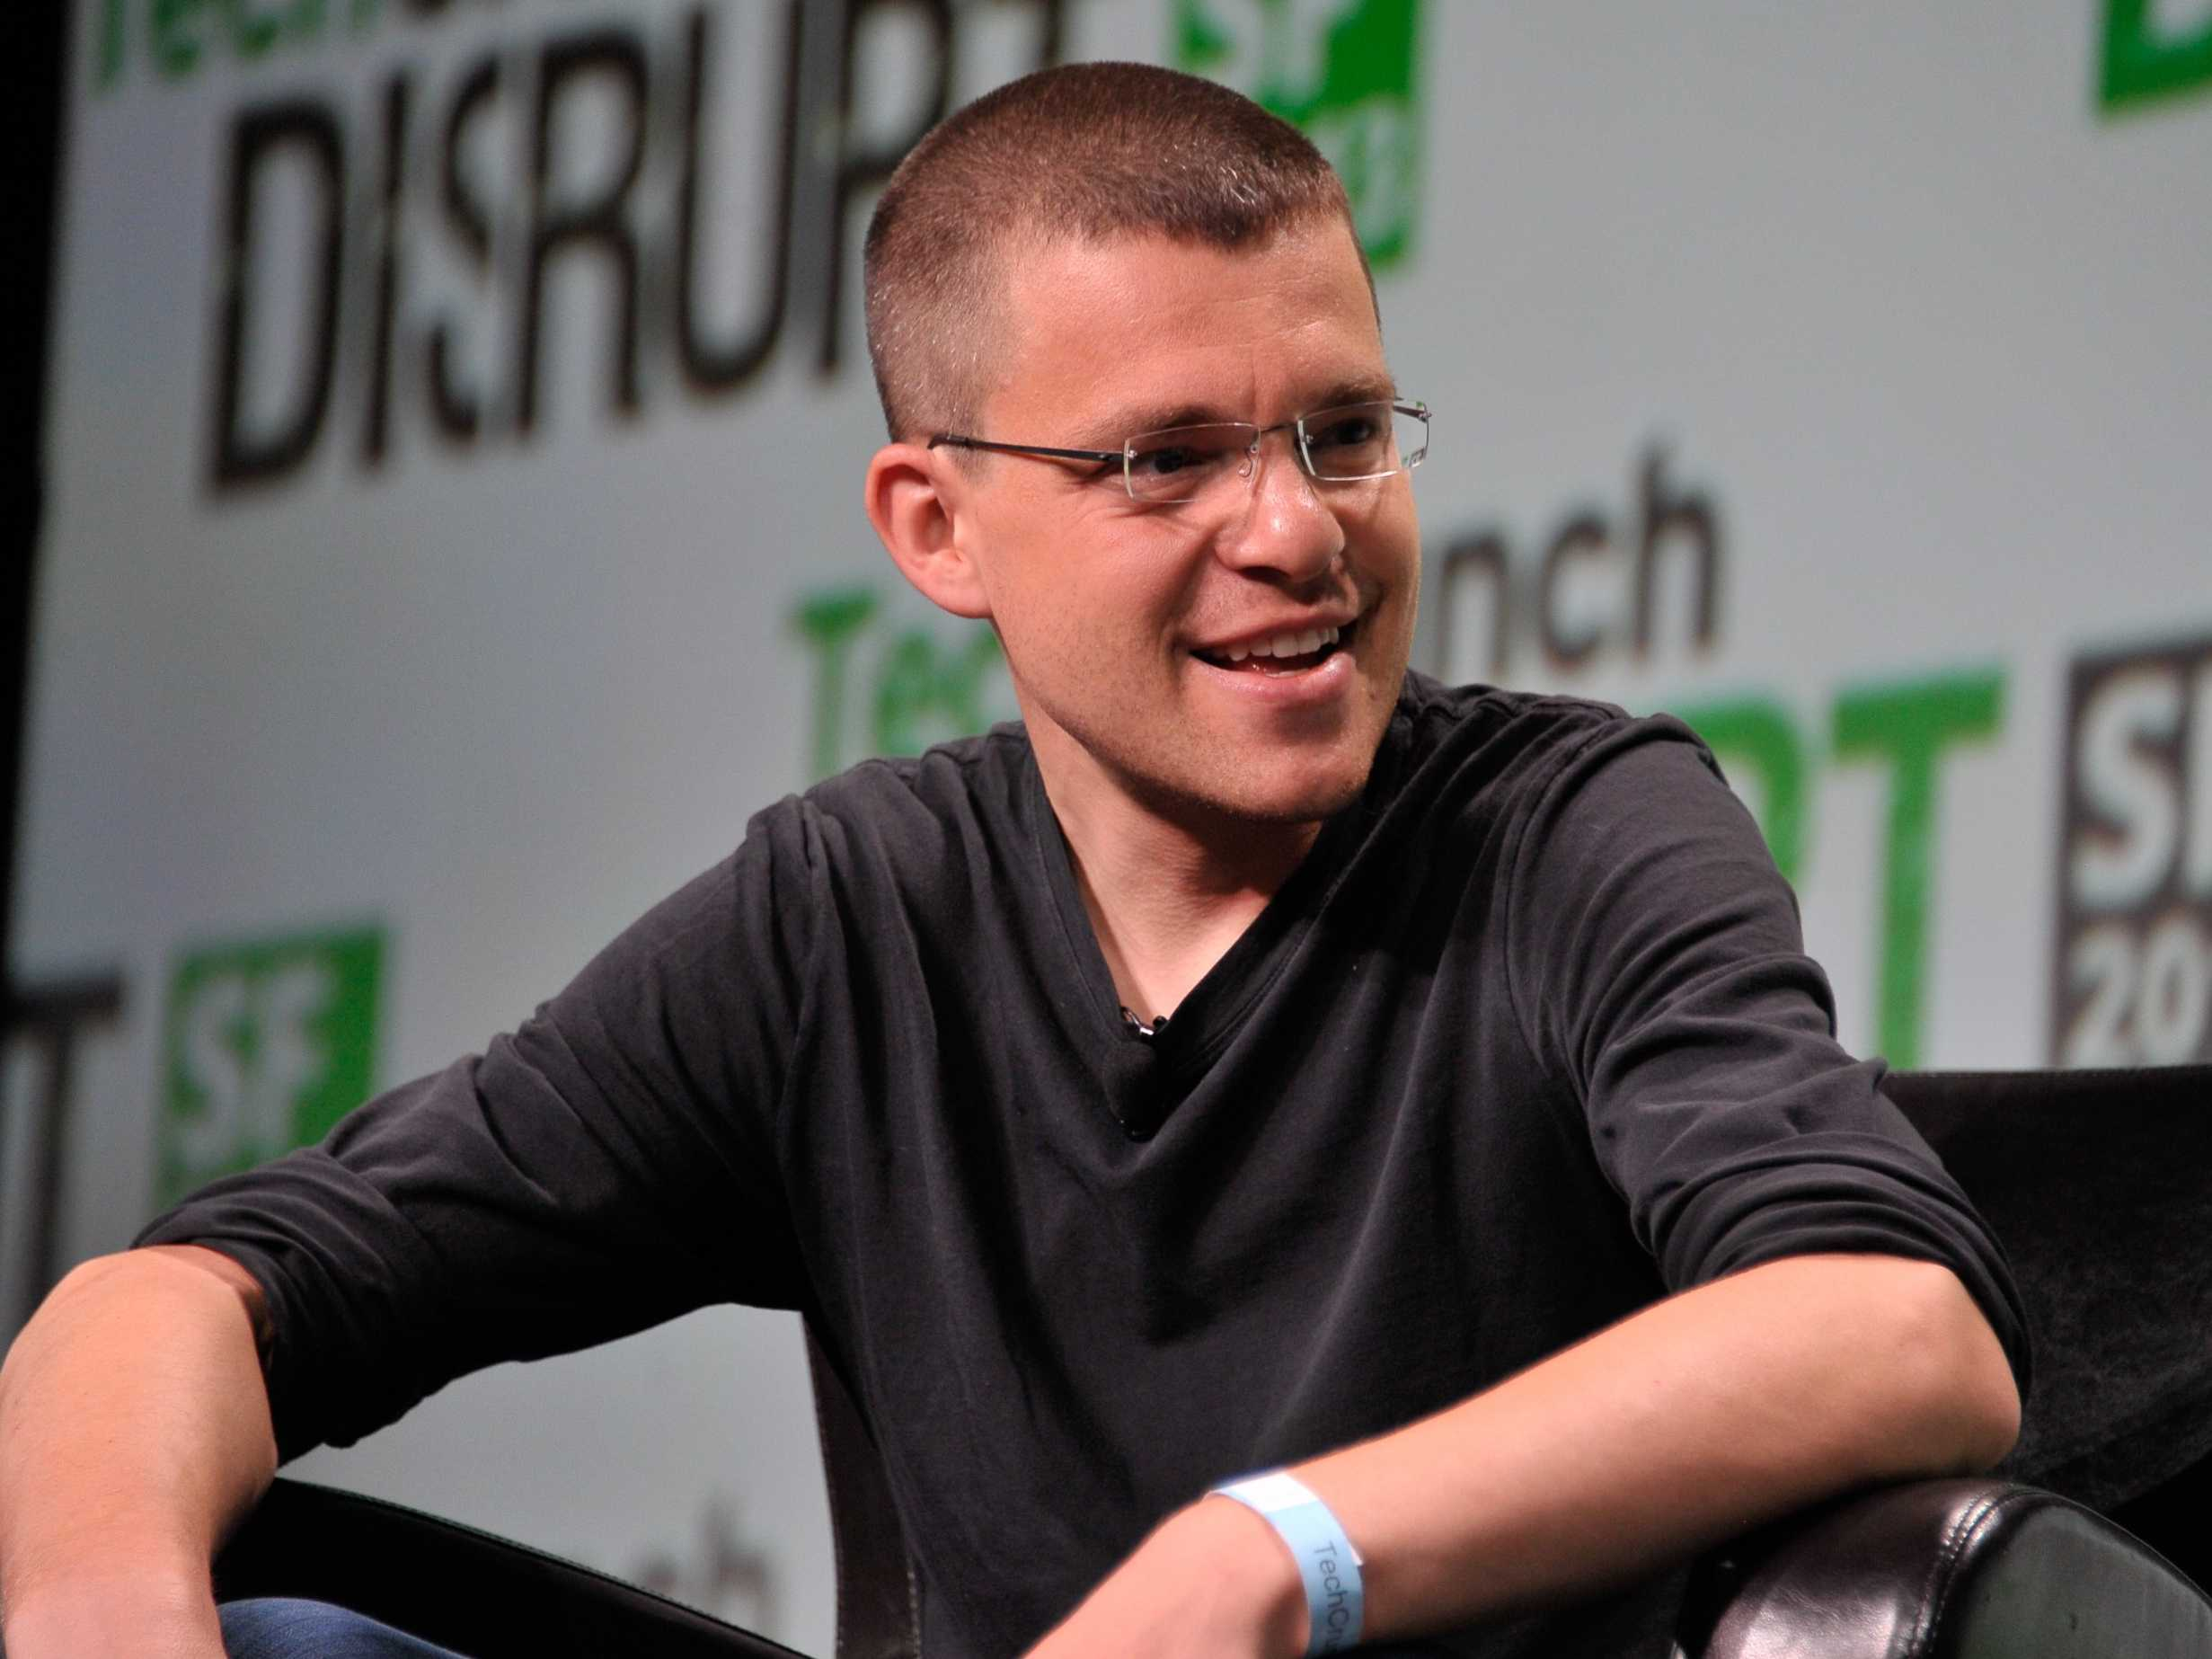 max levchin is the new ceo of a finance startup that has quietly raised 45 million